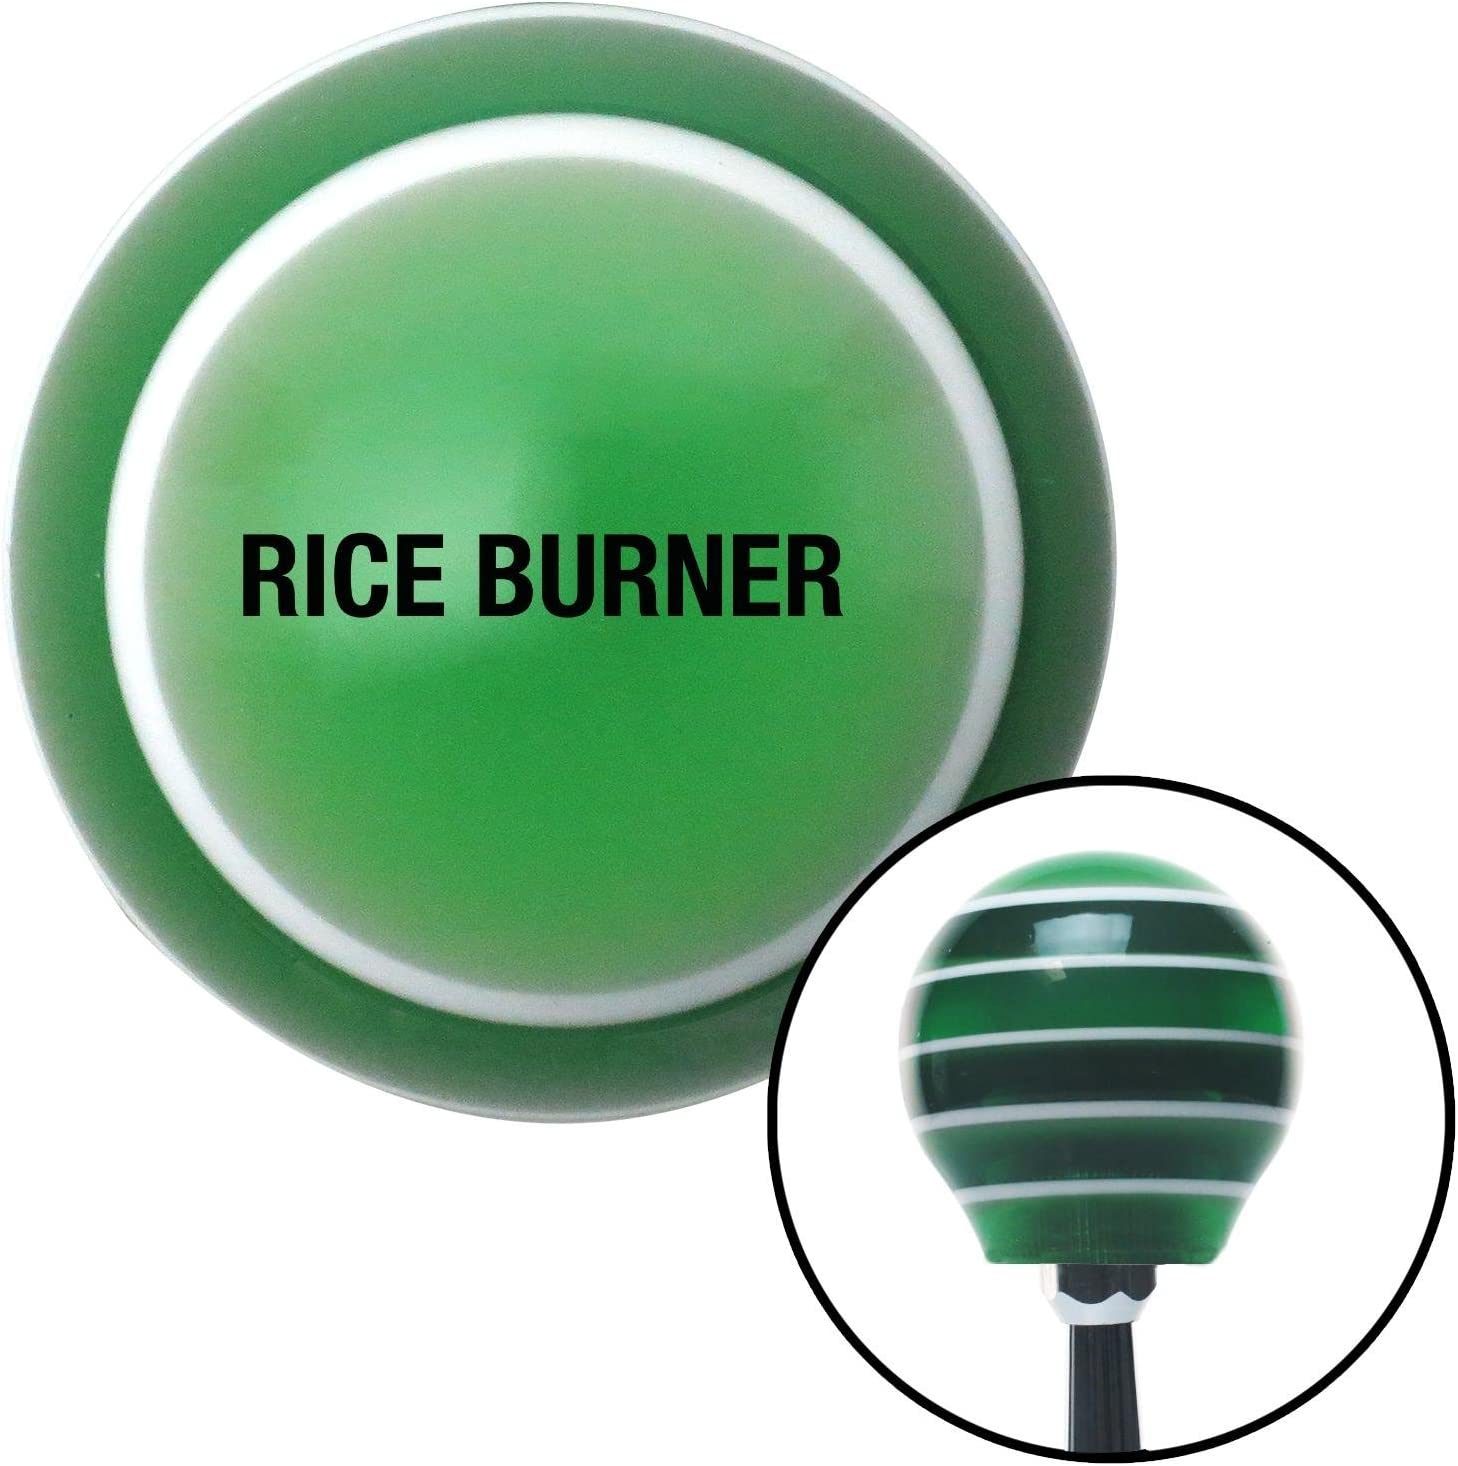 American Shifter 129159 Green Stripe Shift Knob with M16 x 1.5 Insert Black Rice Burner